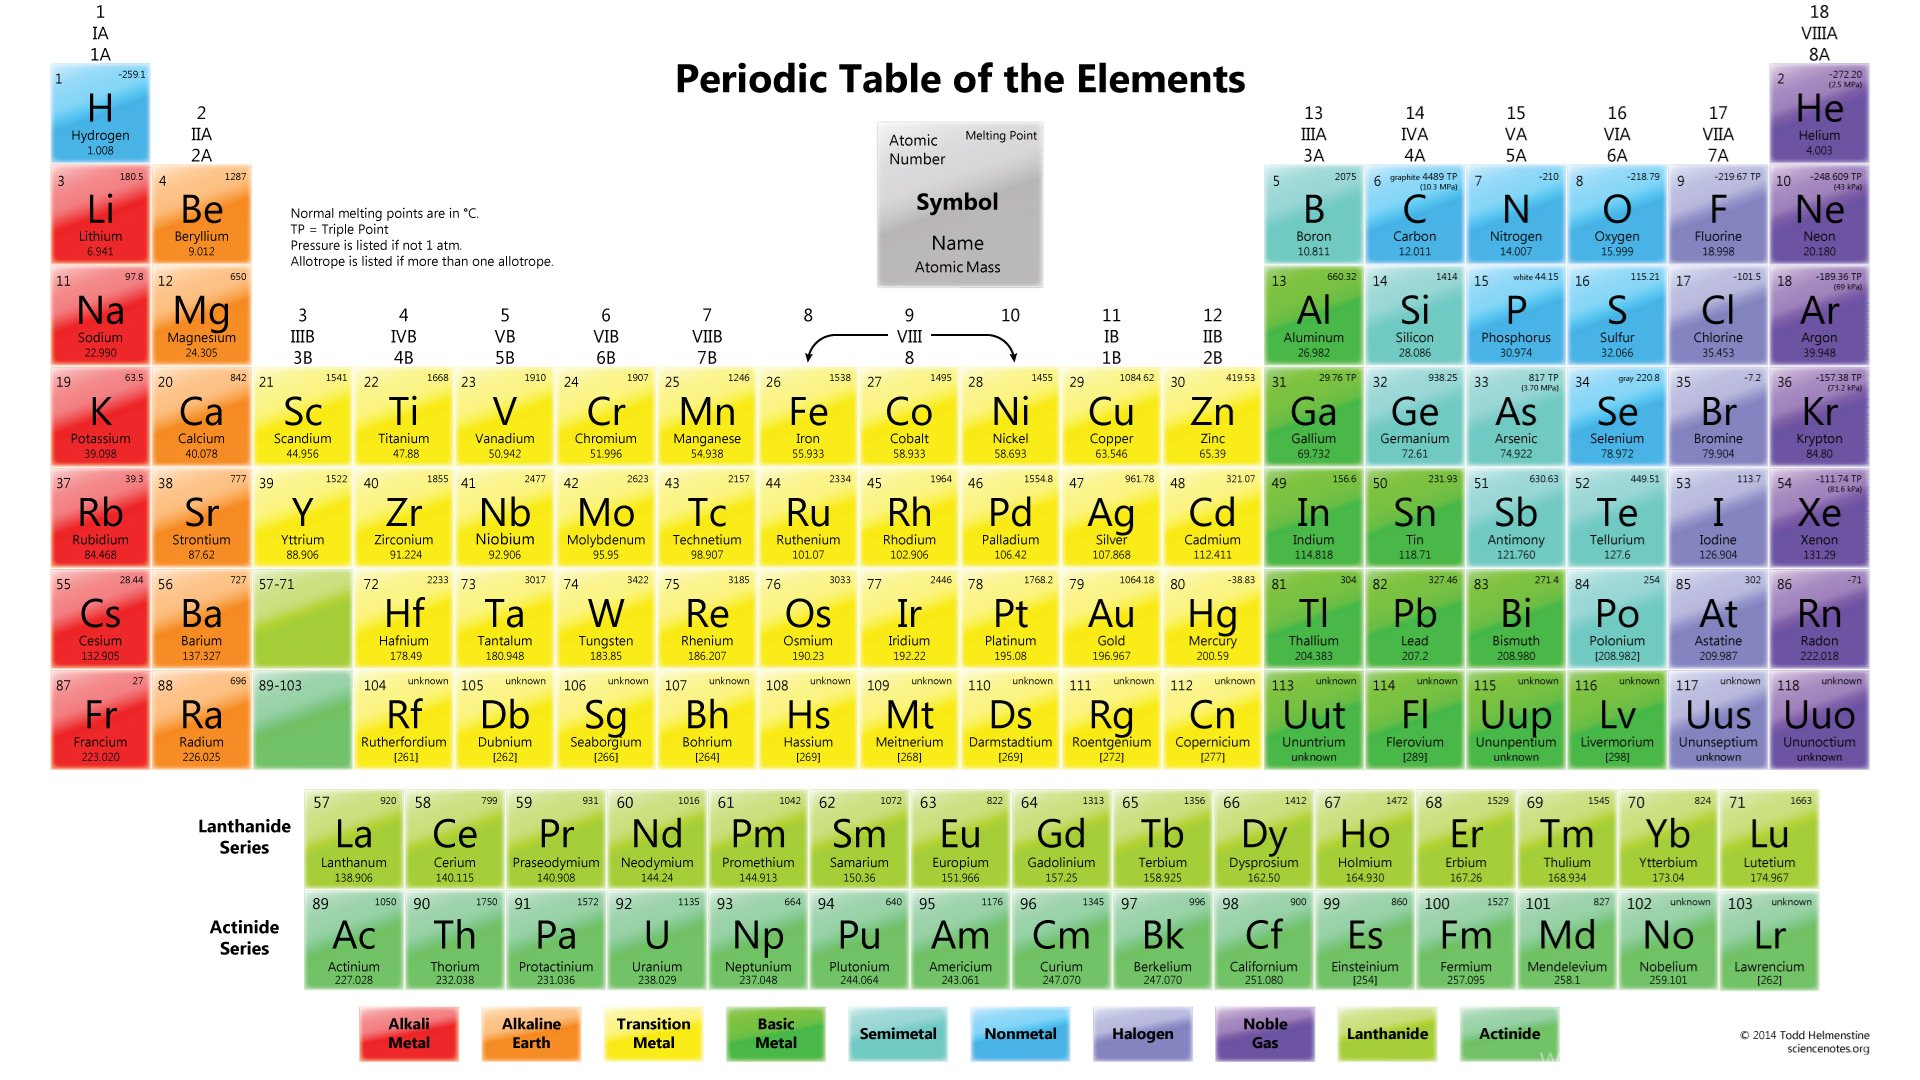 Mosley periodic table gallery periodic table images periodic table desktop wallpaper image collections periodic periodic table iphone background images periodic table images periodic gamestrikefo Images